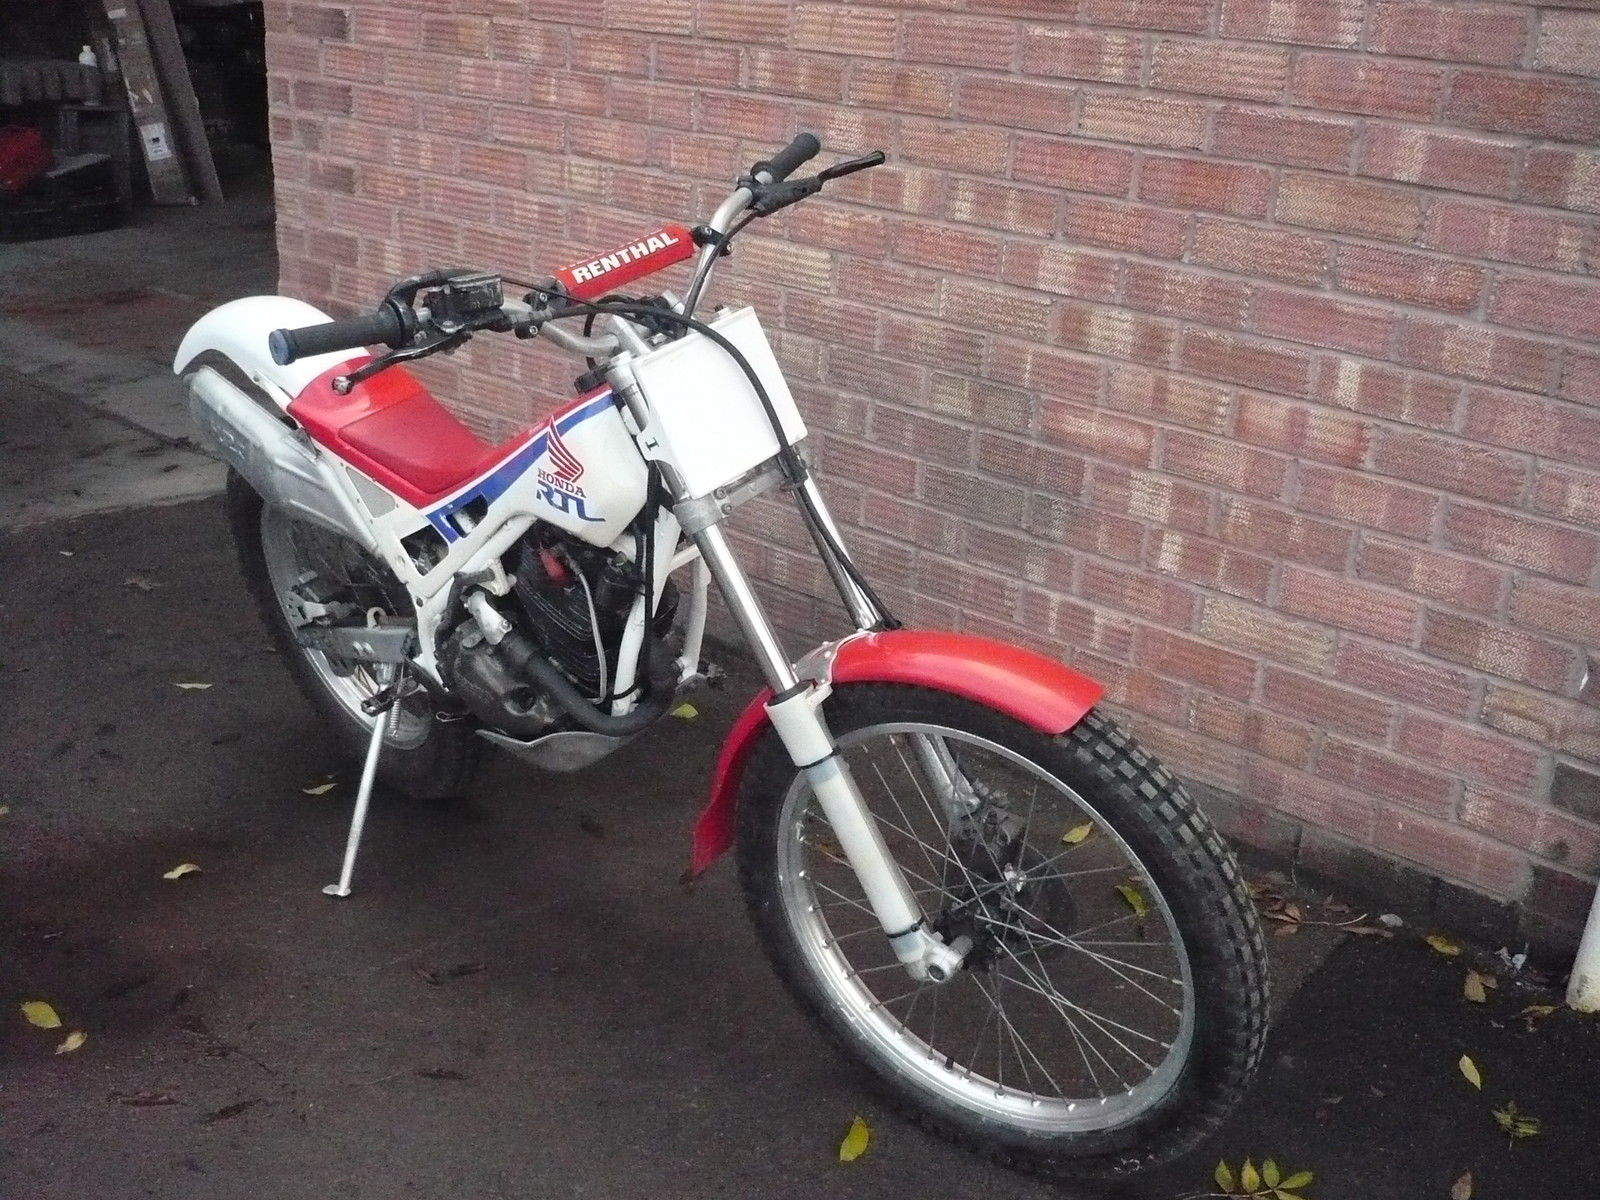 Honda RTL 250 trials bike - 1989 (not TLR250)